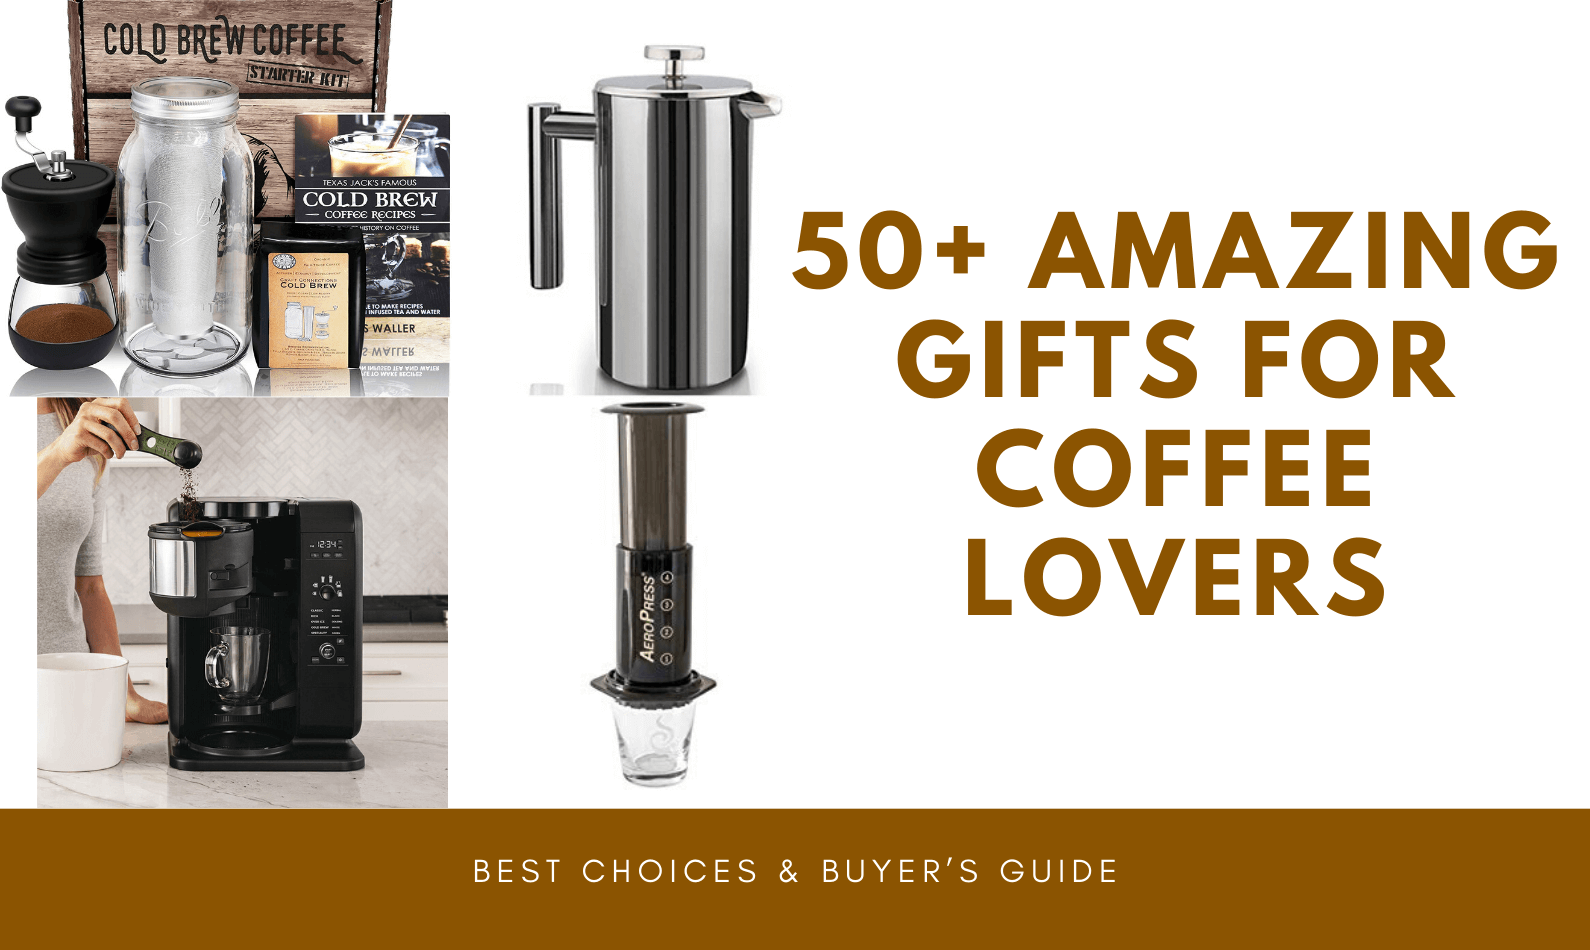 50+ Amazing Gifts for Coffee Lovers